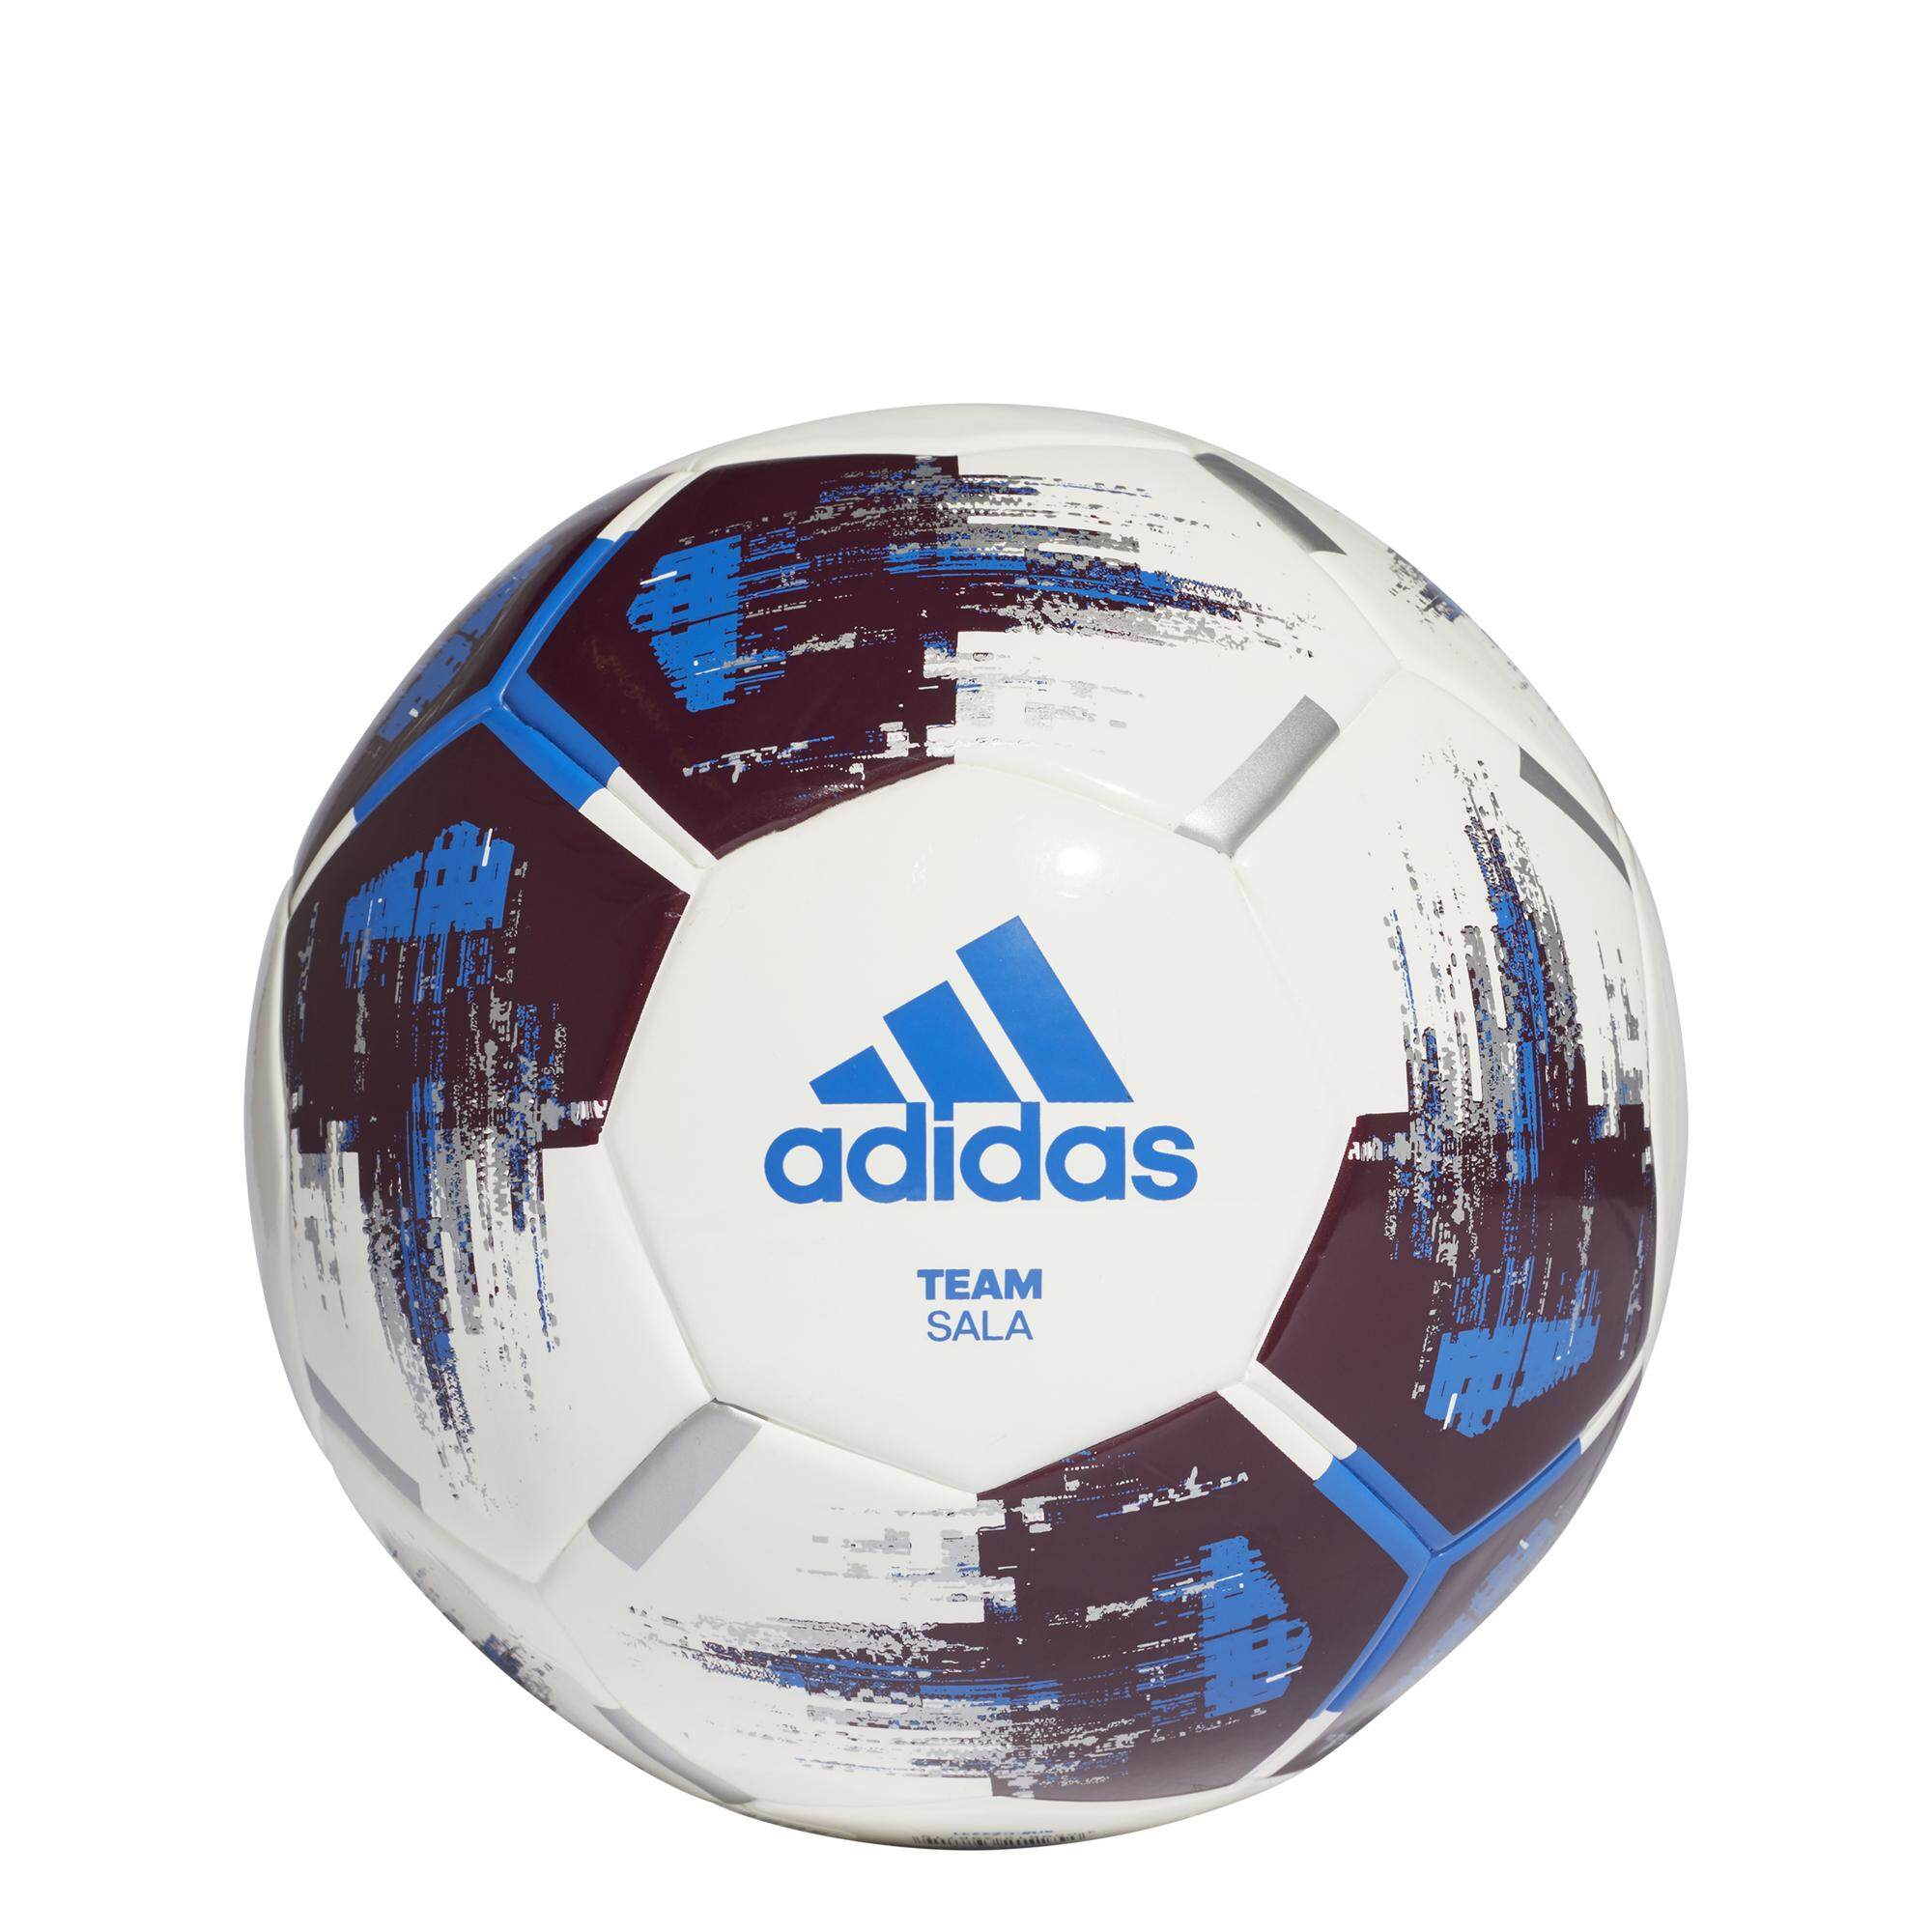 Adidas Footballs price in Malaysia - Best Adidas Footballs  75a92f7570398